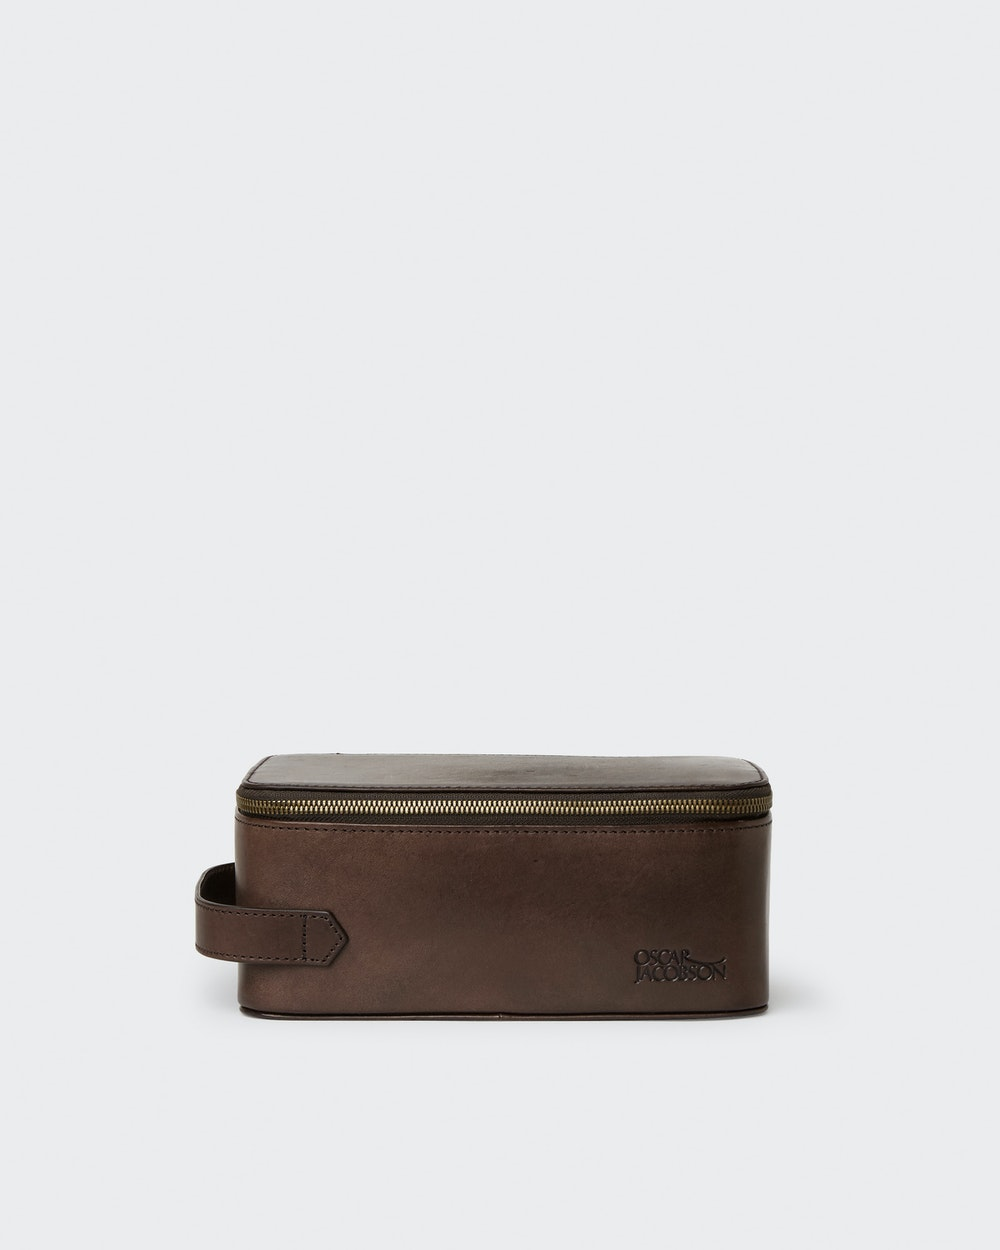 Tobias toiletry bag Dark brown Oscar Jacobson